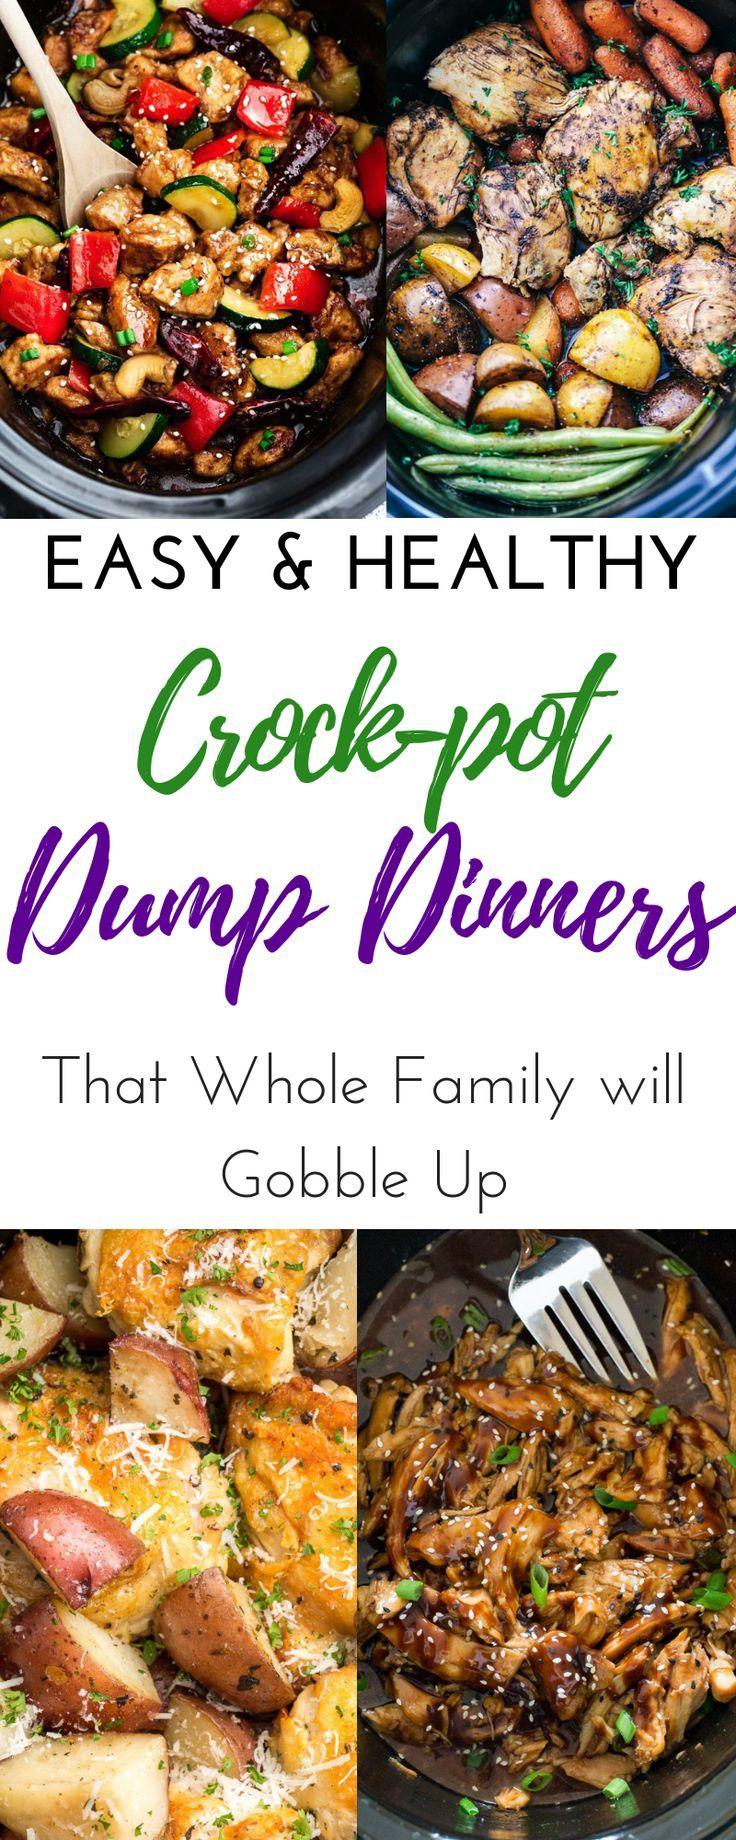 Easy Healthy Slow cooker Recipes the Family will Love for your Crock-pot